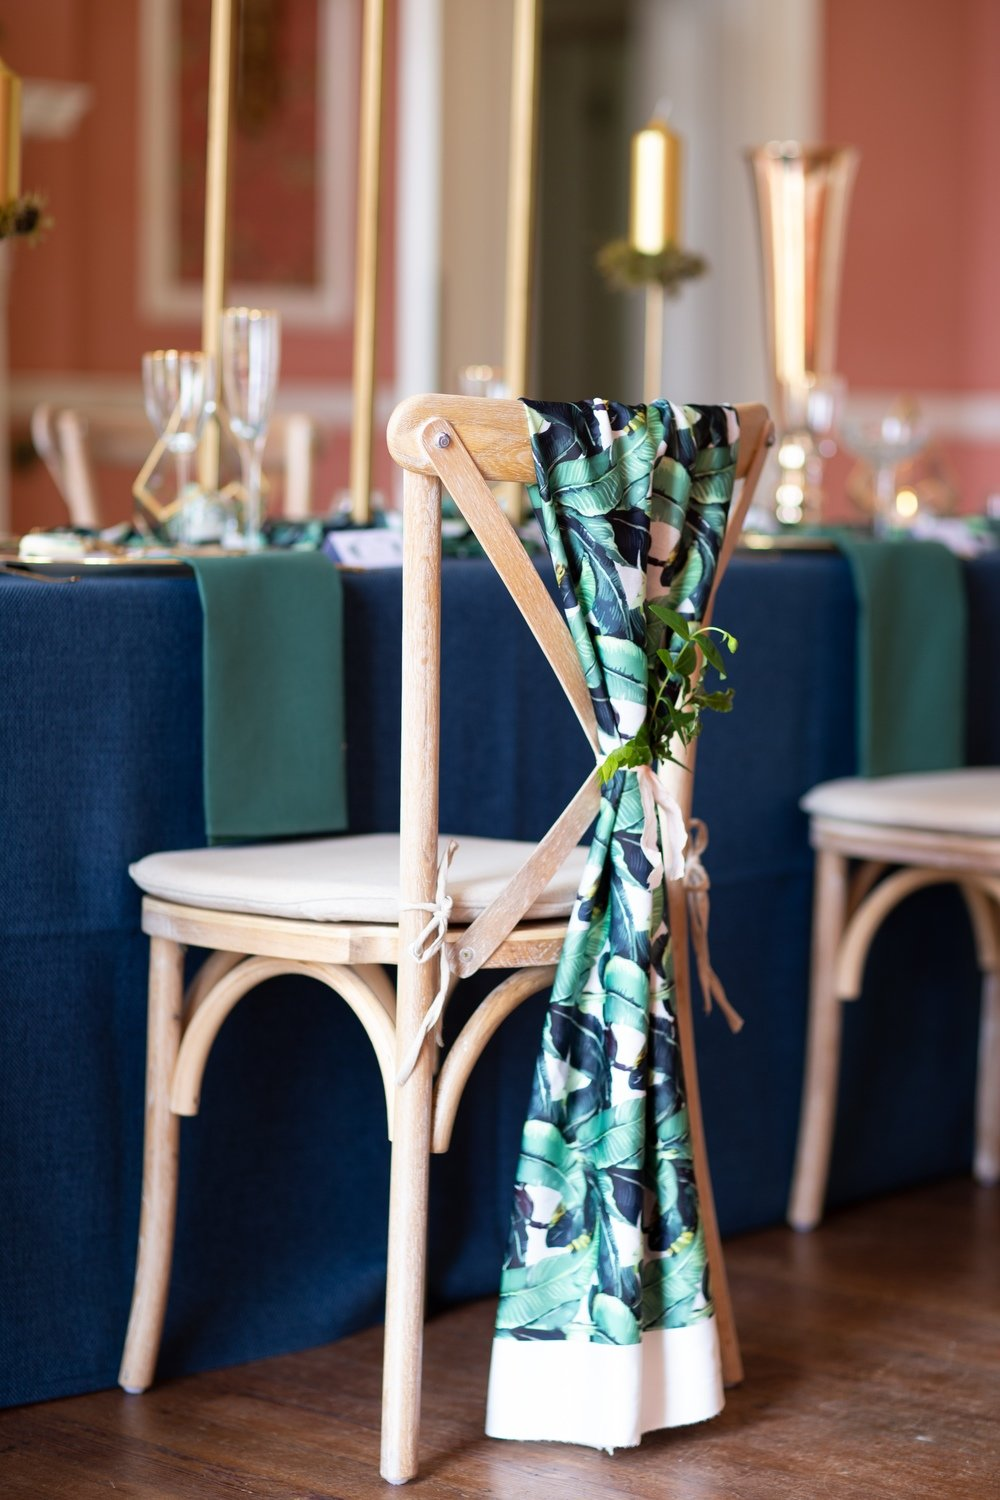 Linens / long top table cloths